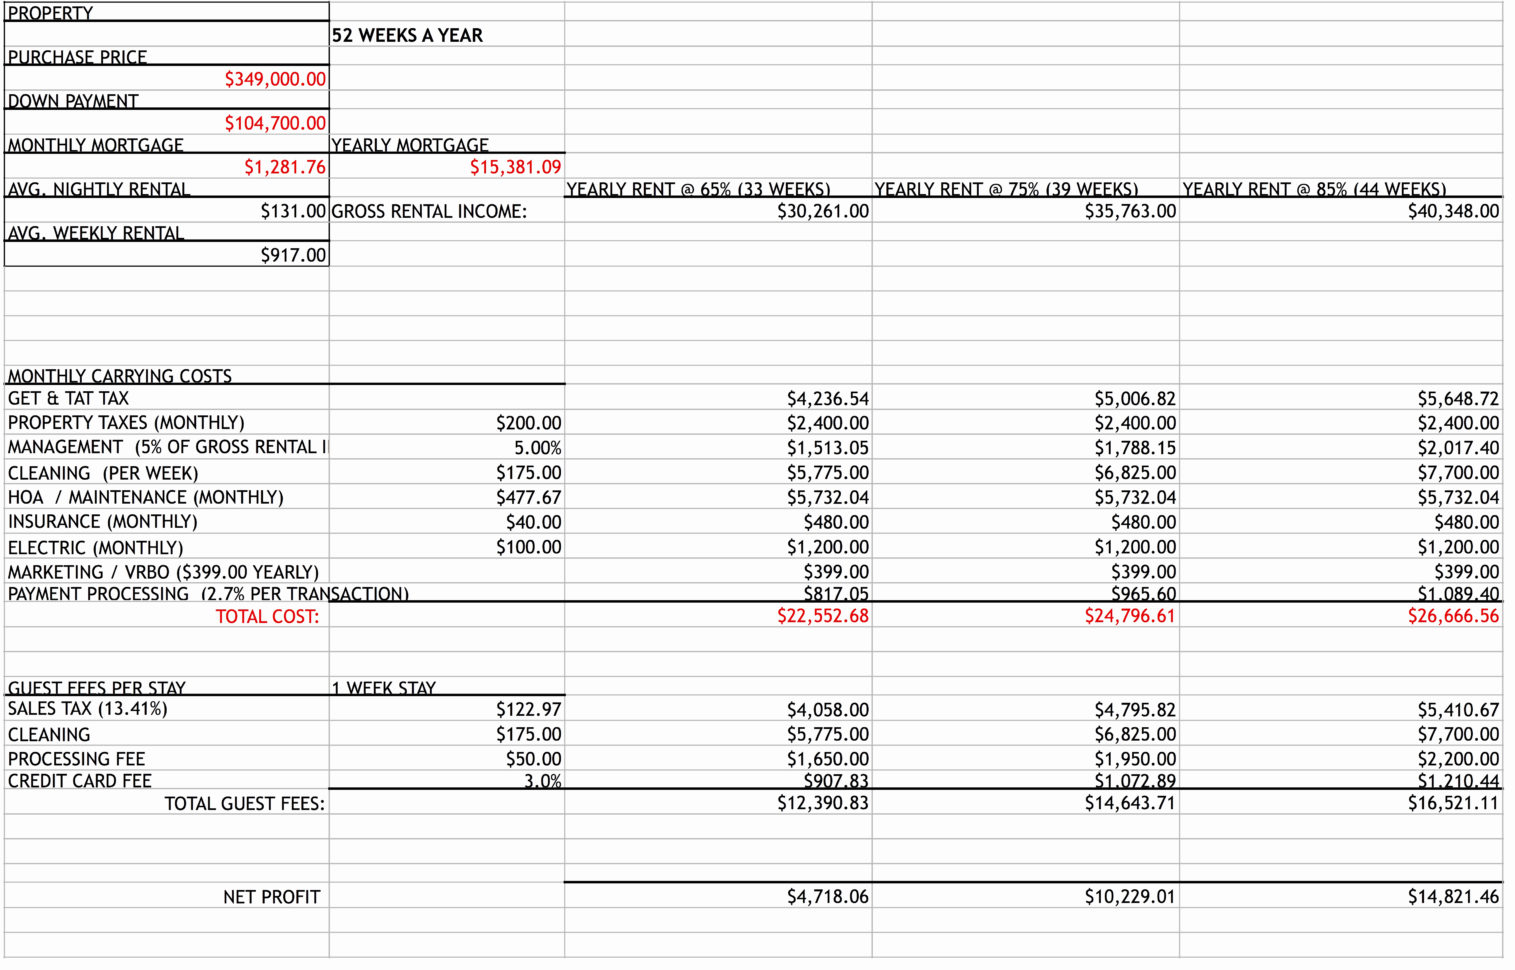 Investment Property Spreadsheet Template Within Example Of Investment Property Calculator Excel Spreadsheet Savings